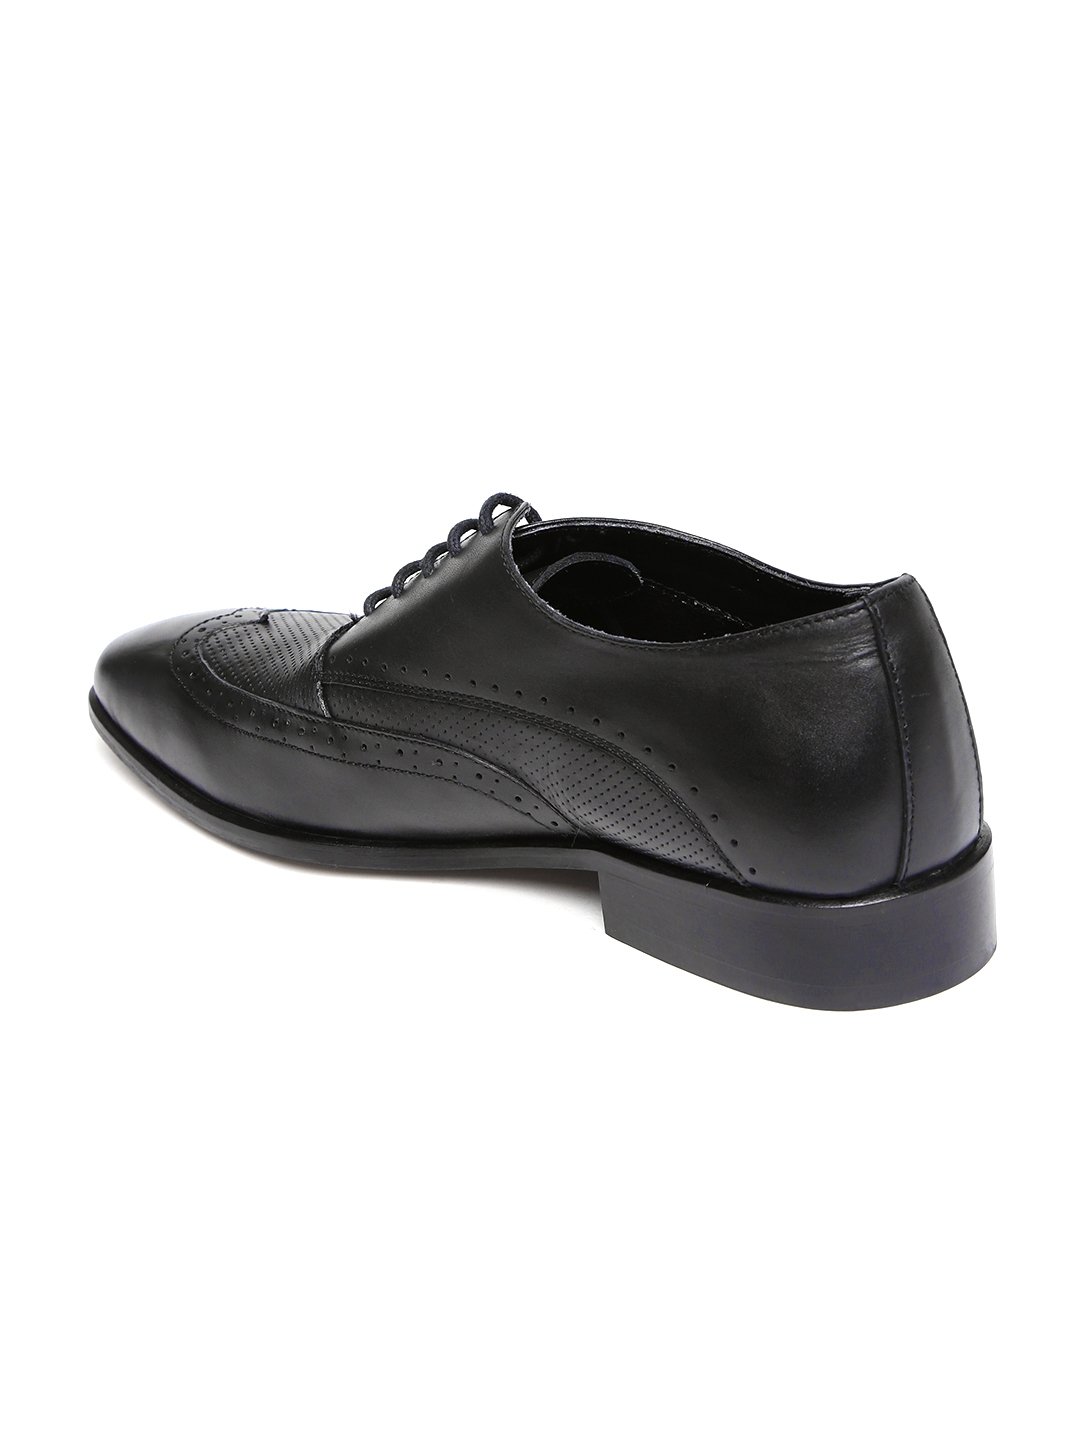 52b5edf3ff Buy Van Heusen Men Black Leather Formal Brogues - Formal Shoes for ...